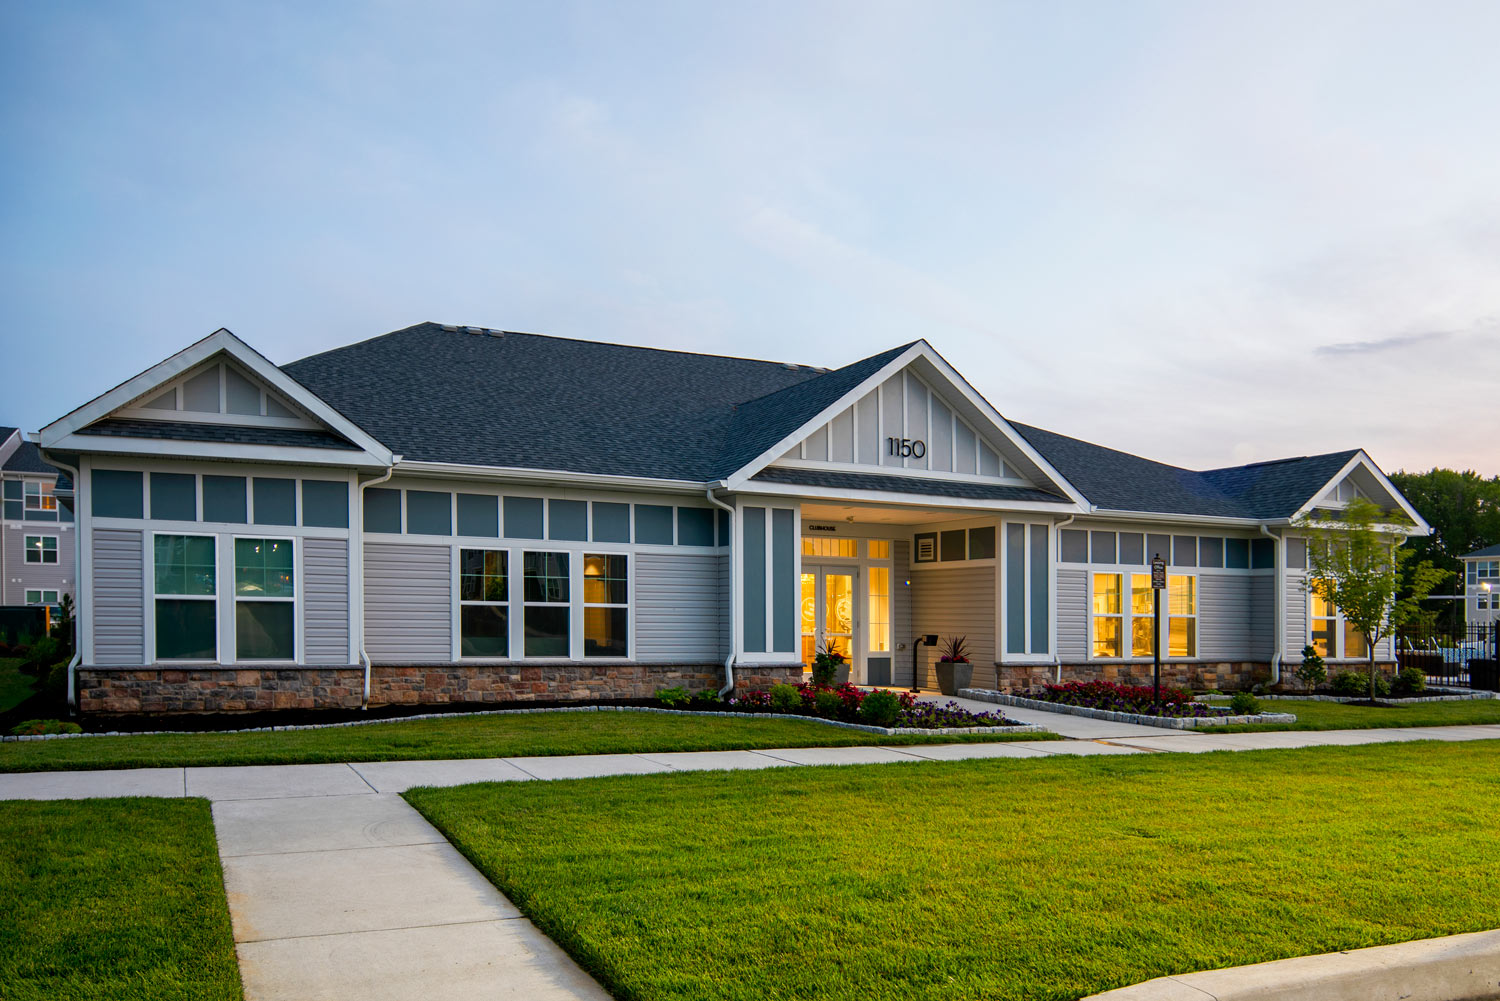 exterior of clubhouse with meticulously manicured lawn - newark de apartments